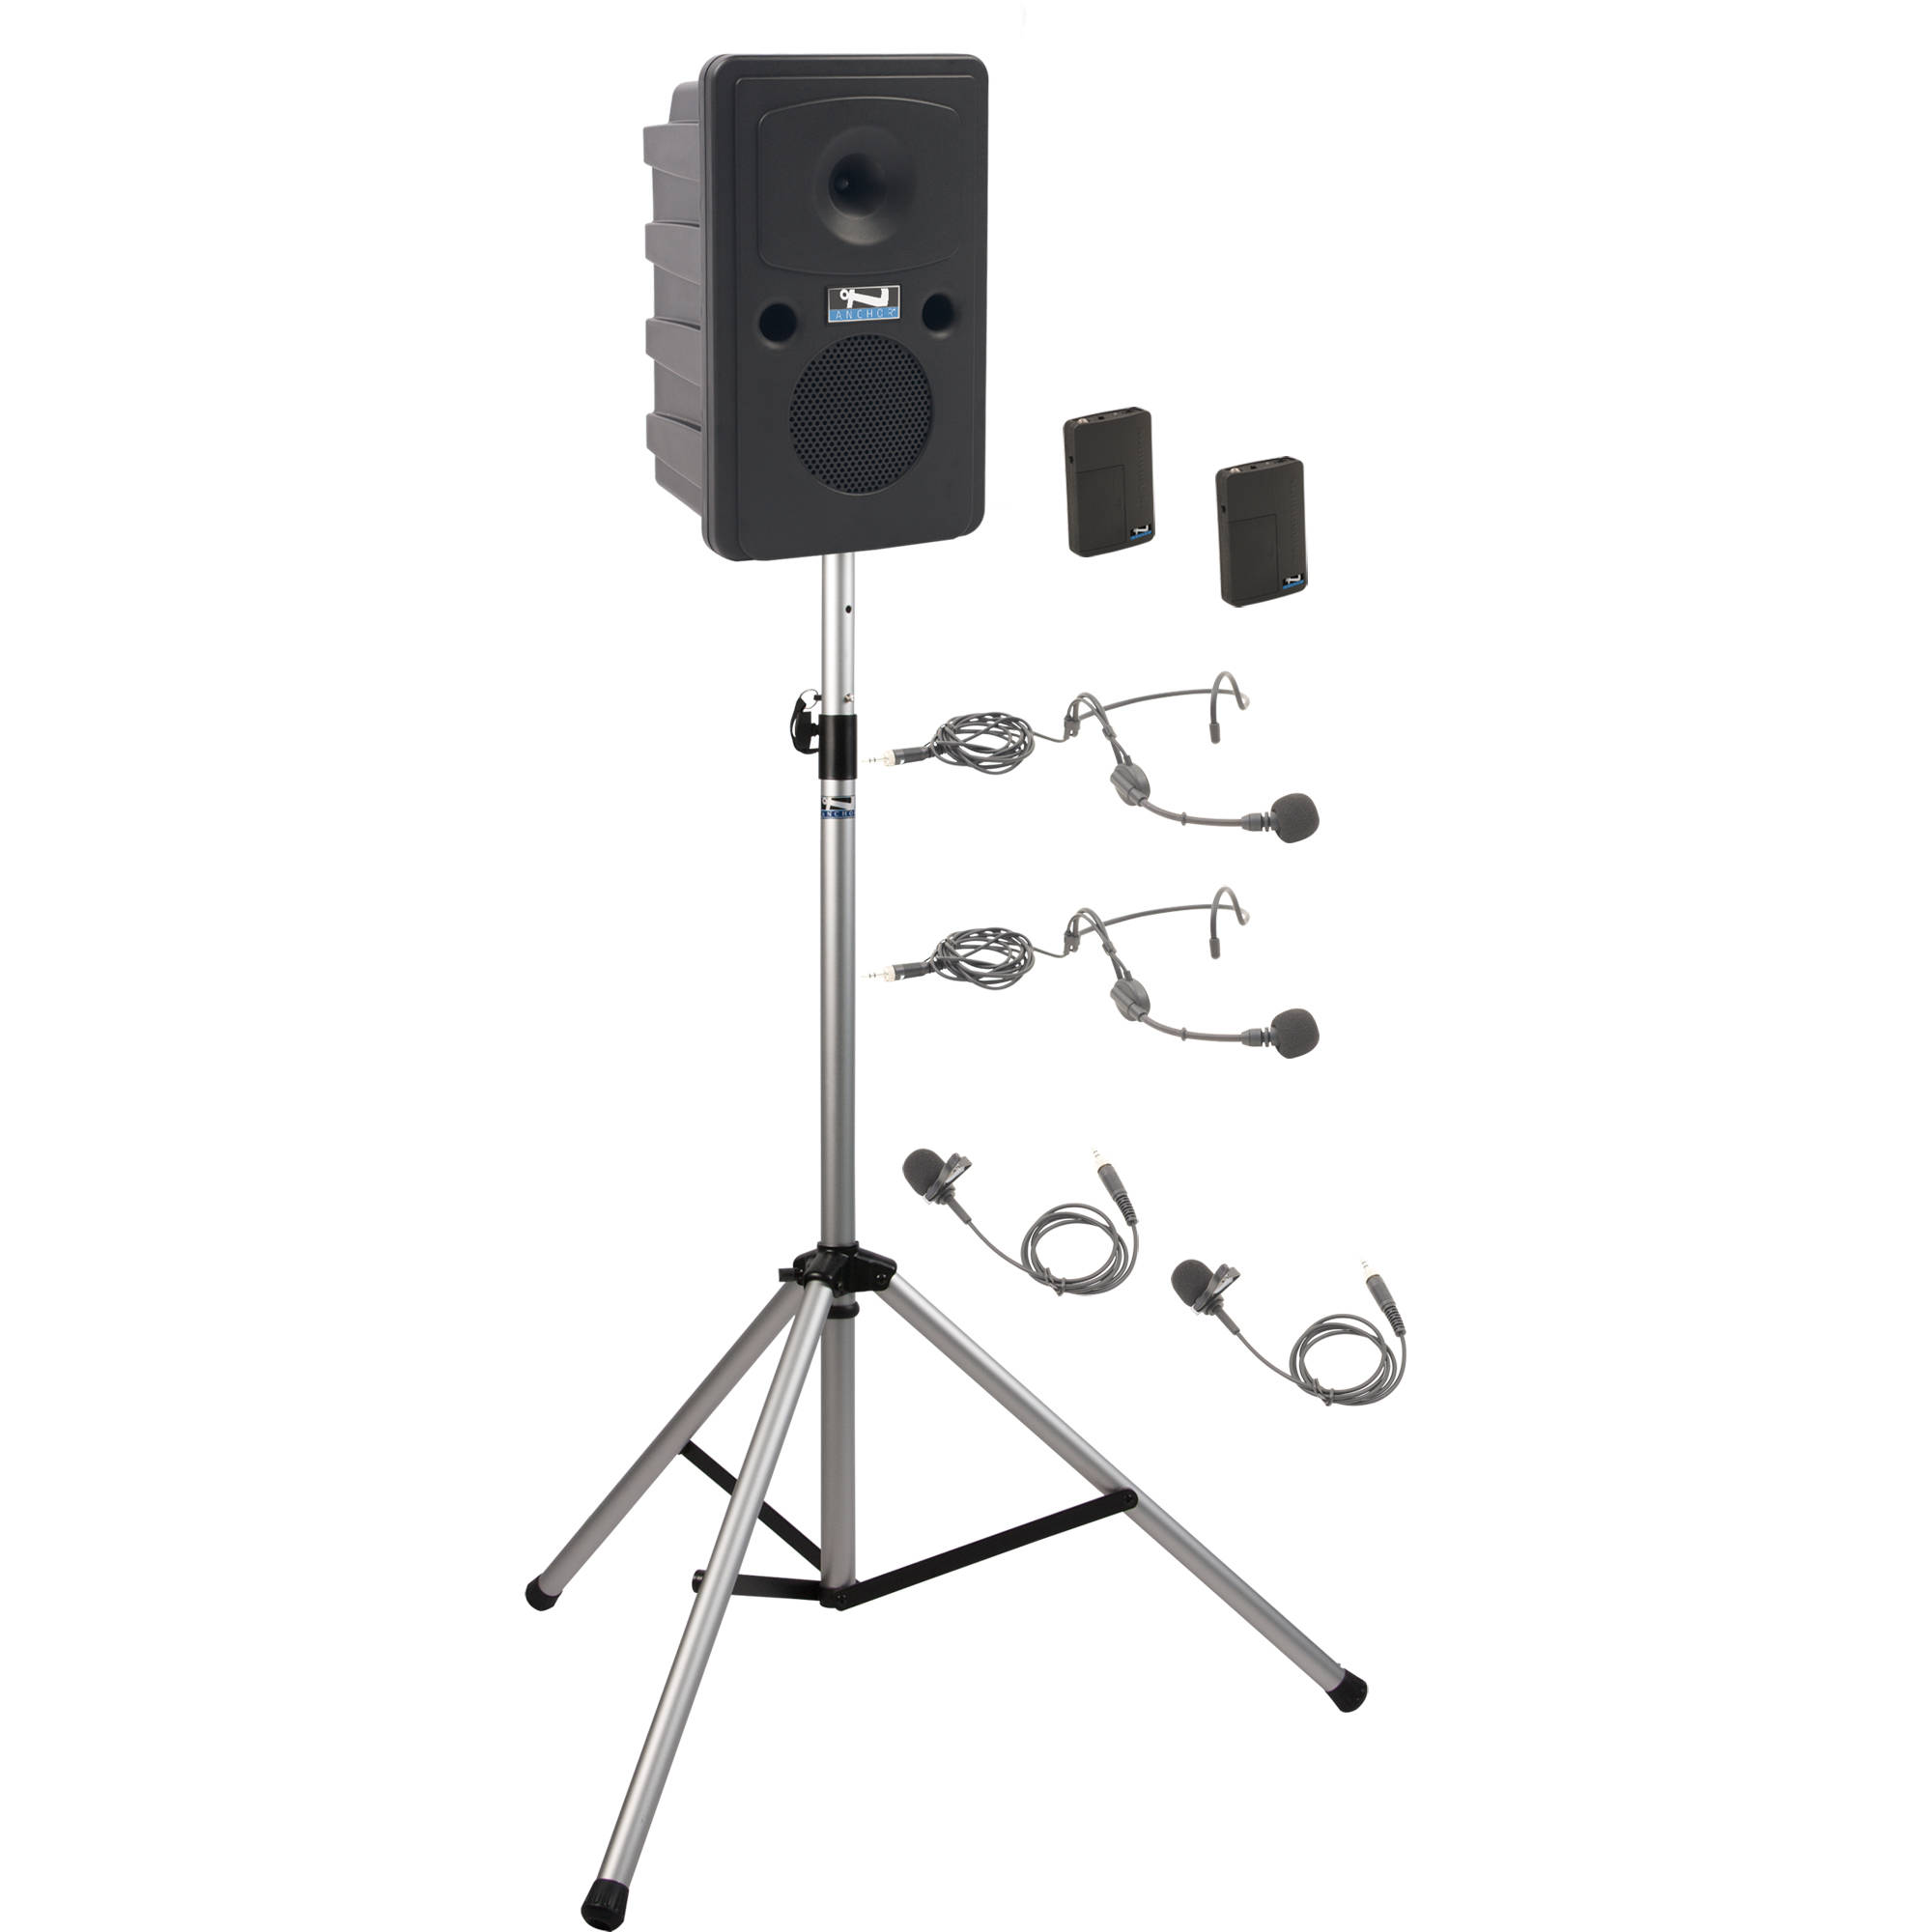 Anchor Audio GG-BP2-BB Go Getter Portable Sound System Basic Package 2 with  Two Wireless Bodypack Transmitters and Speaker Stand (2 x Lavalier Mics, ... e8942901aa